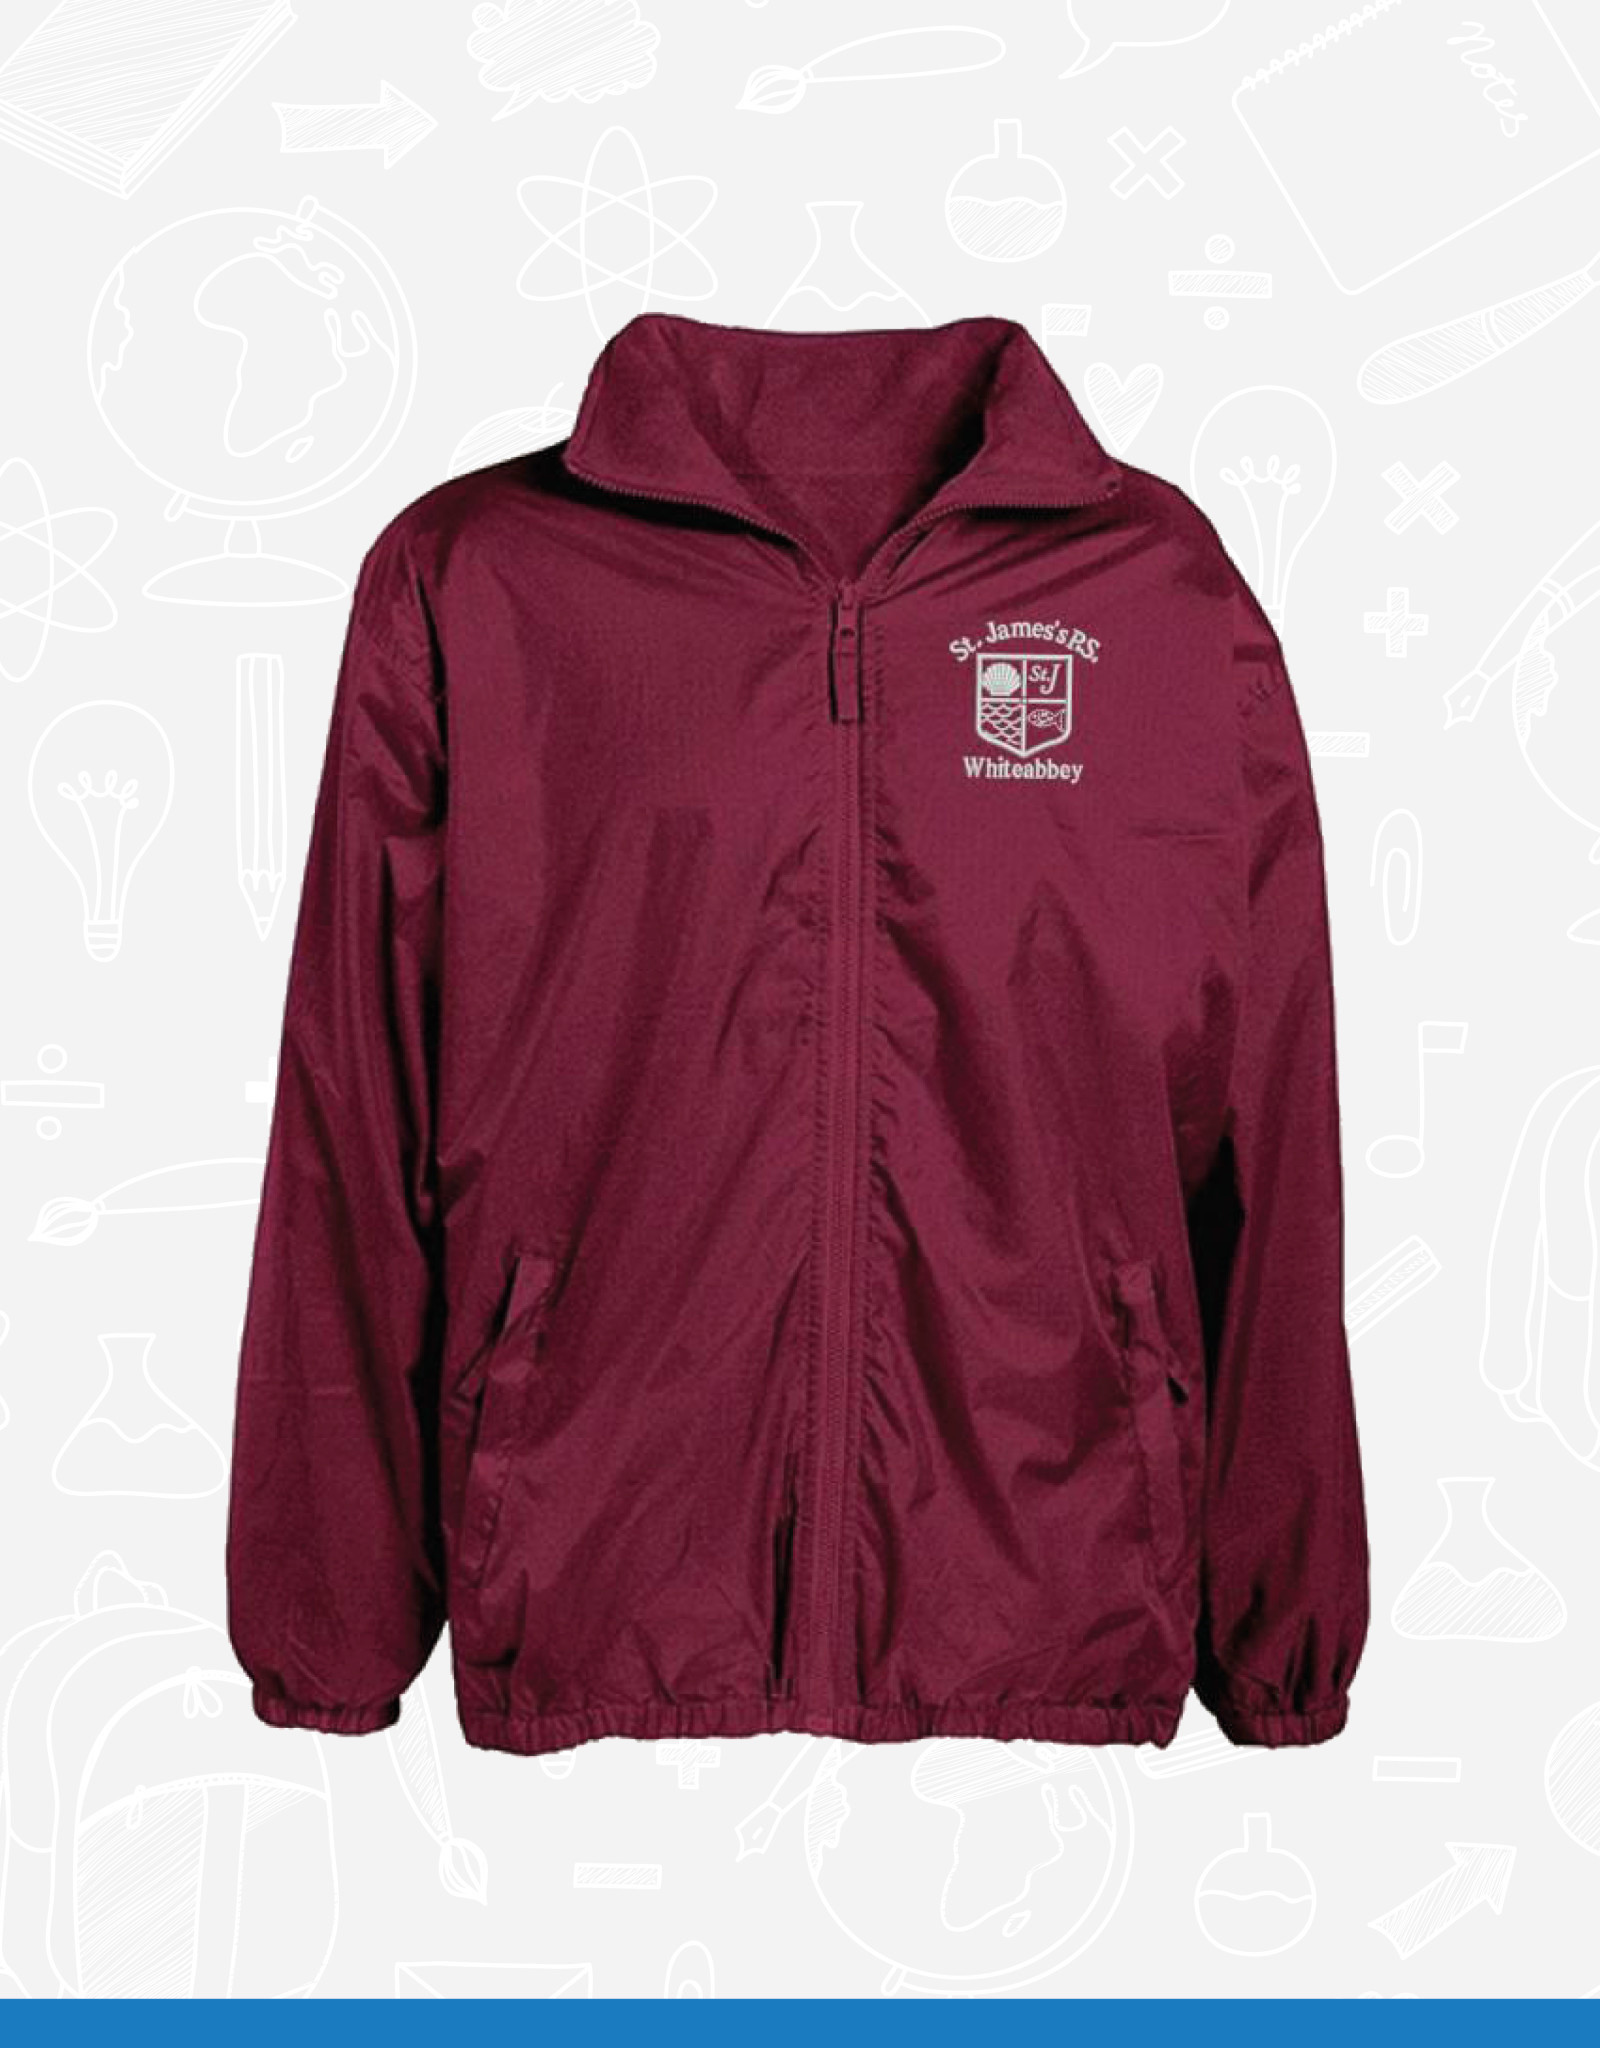 Banner St James's Primary Jacket (3JM)